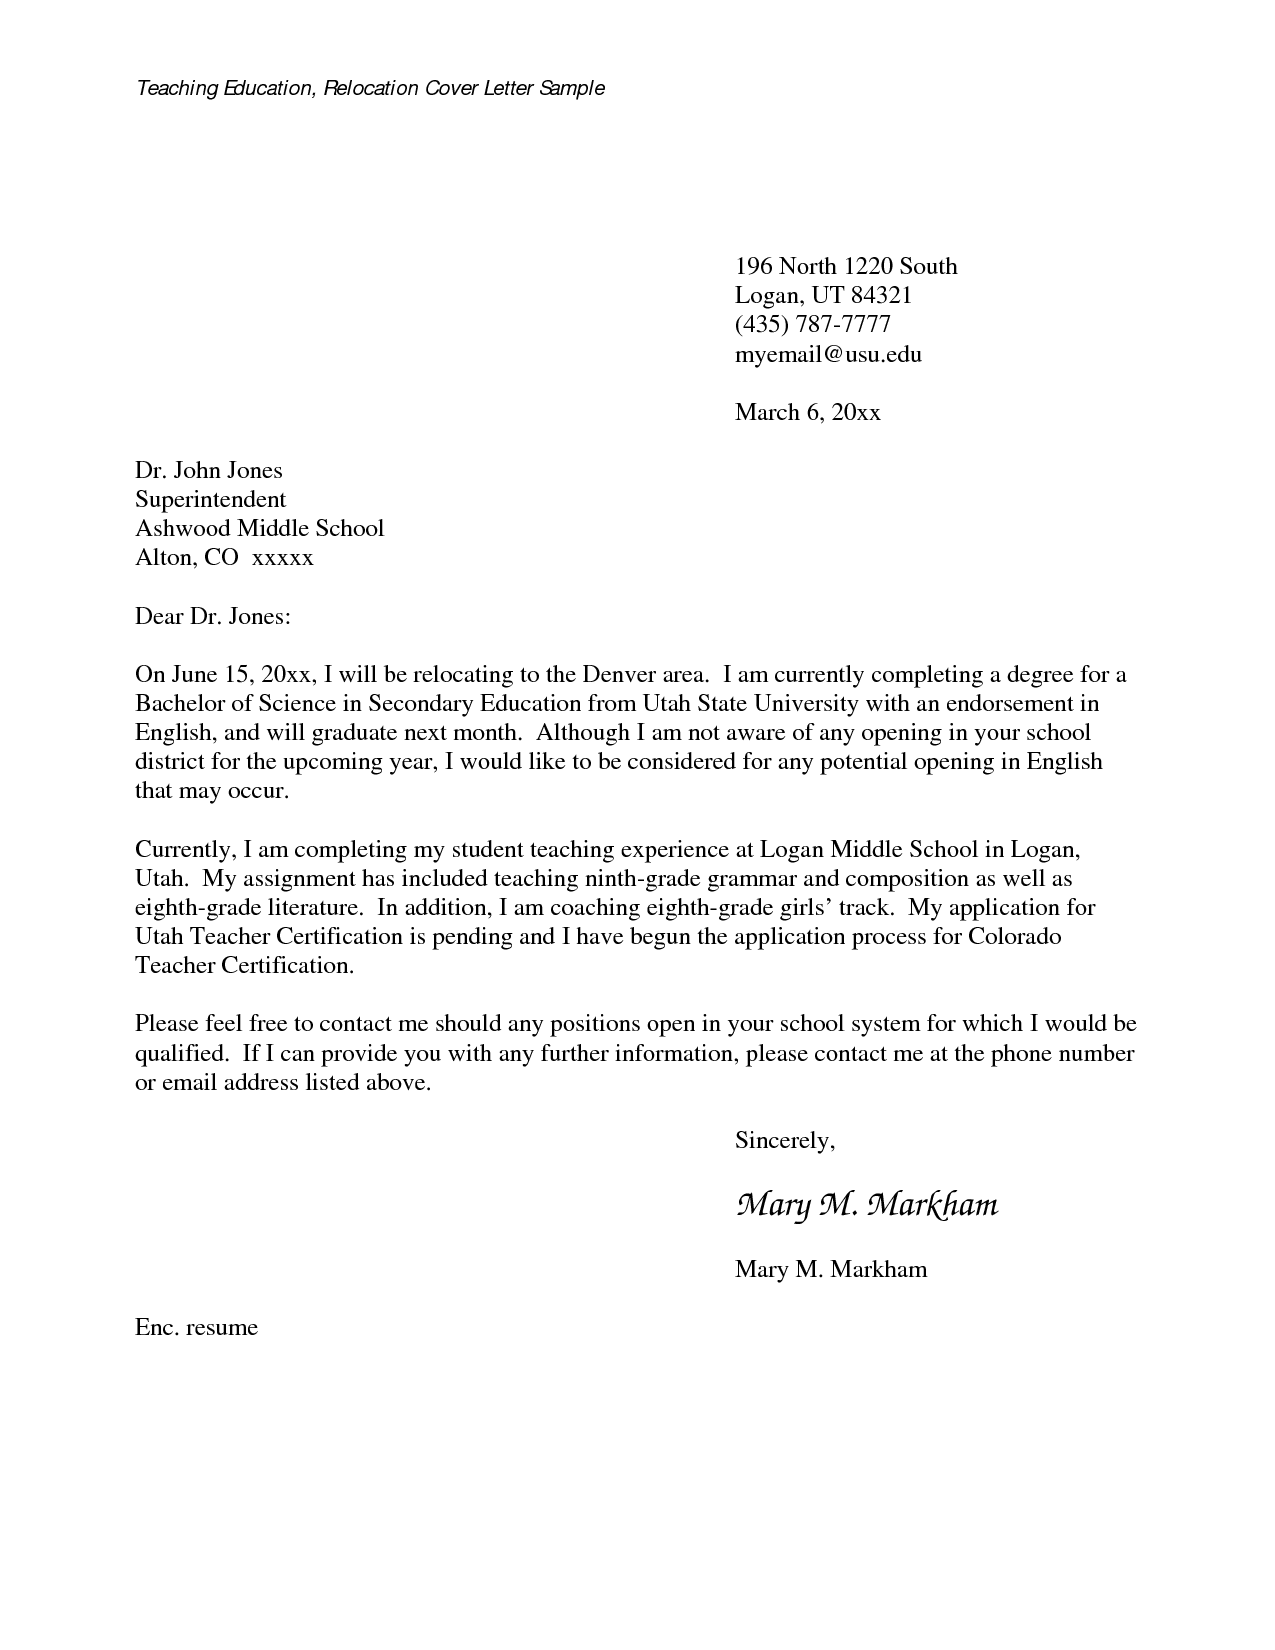 Letters For Teachers Relocating MedwebcomRelocation Cover Letter